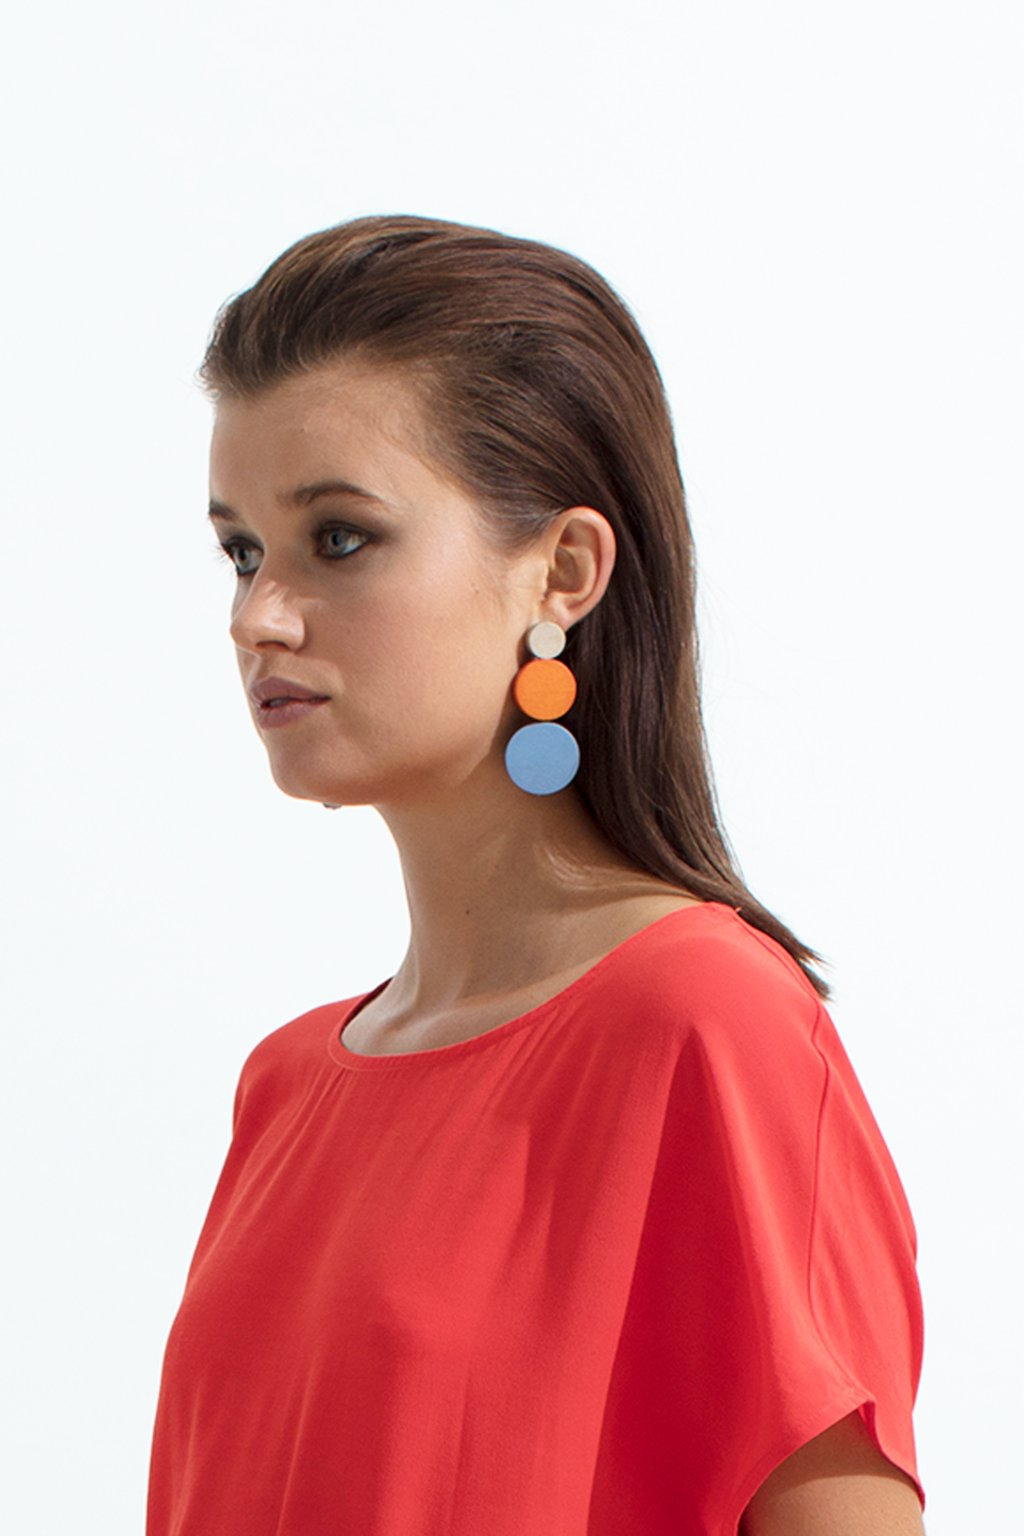 ELK The Label - Dorf Drop Earrings - White / Iron / Grass Green online at PAYA boutique